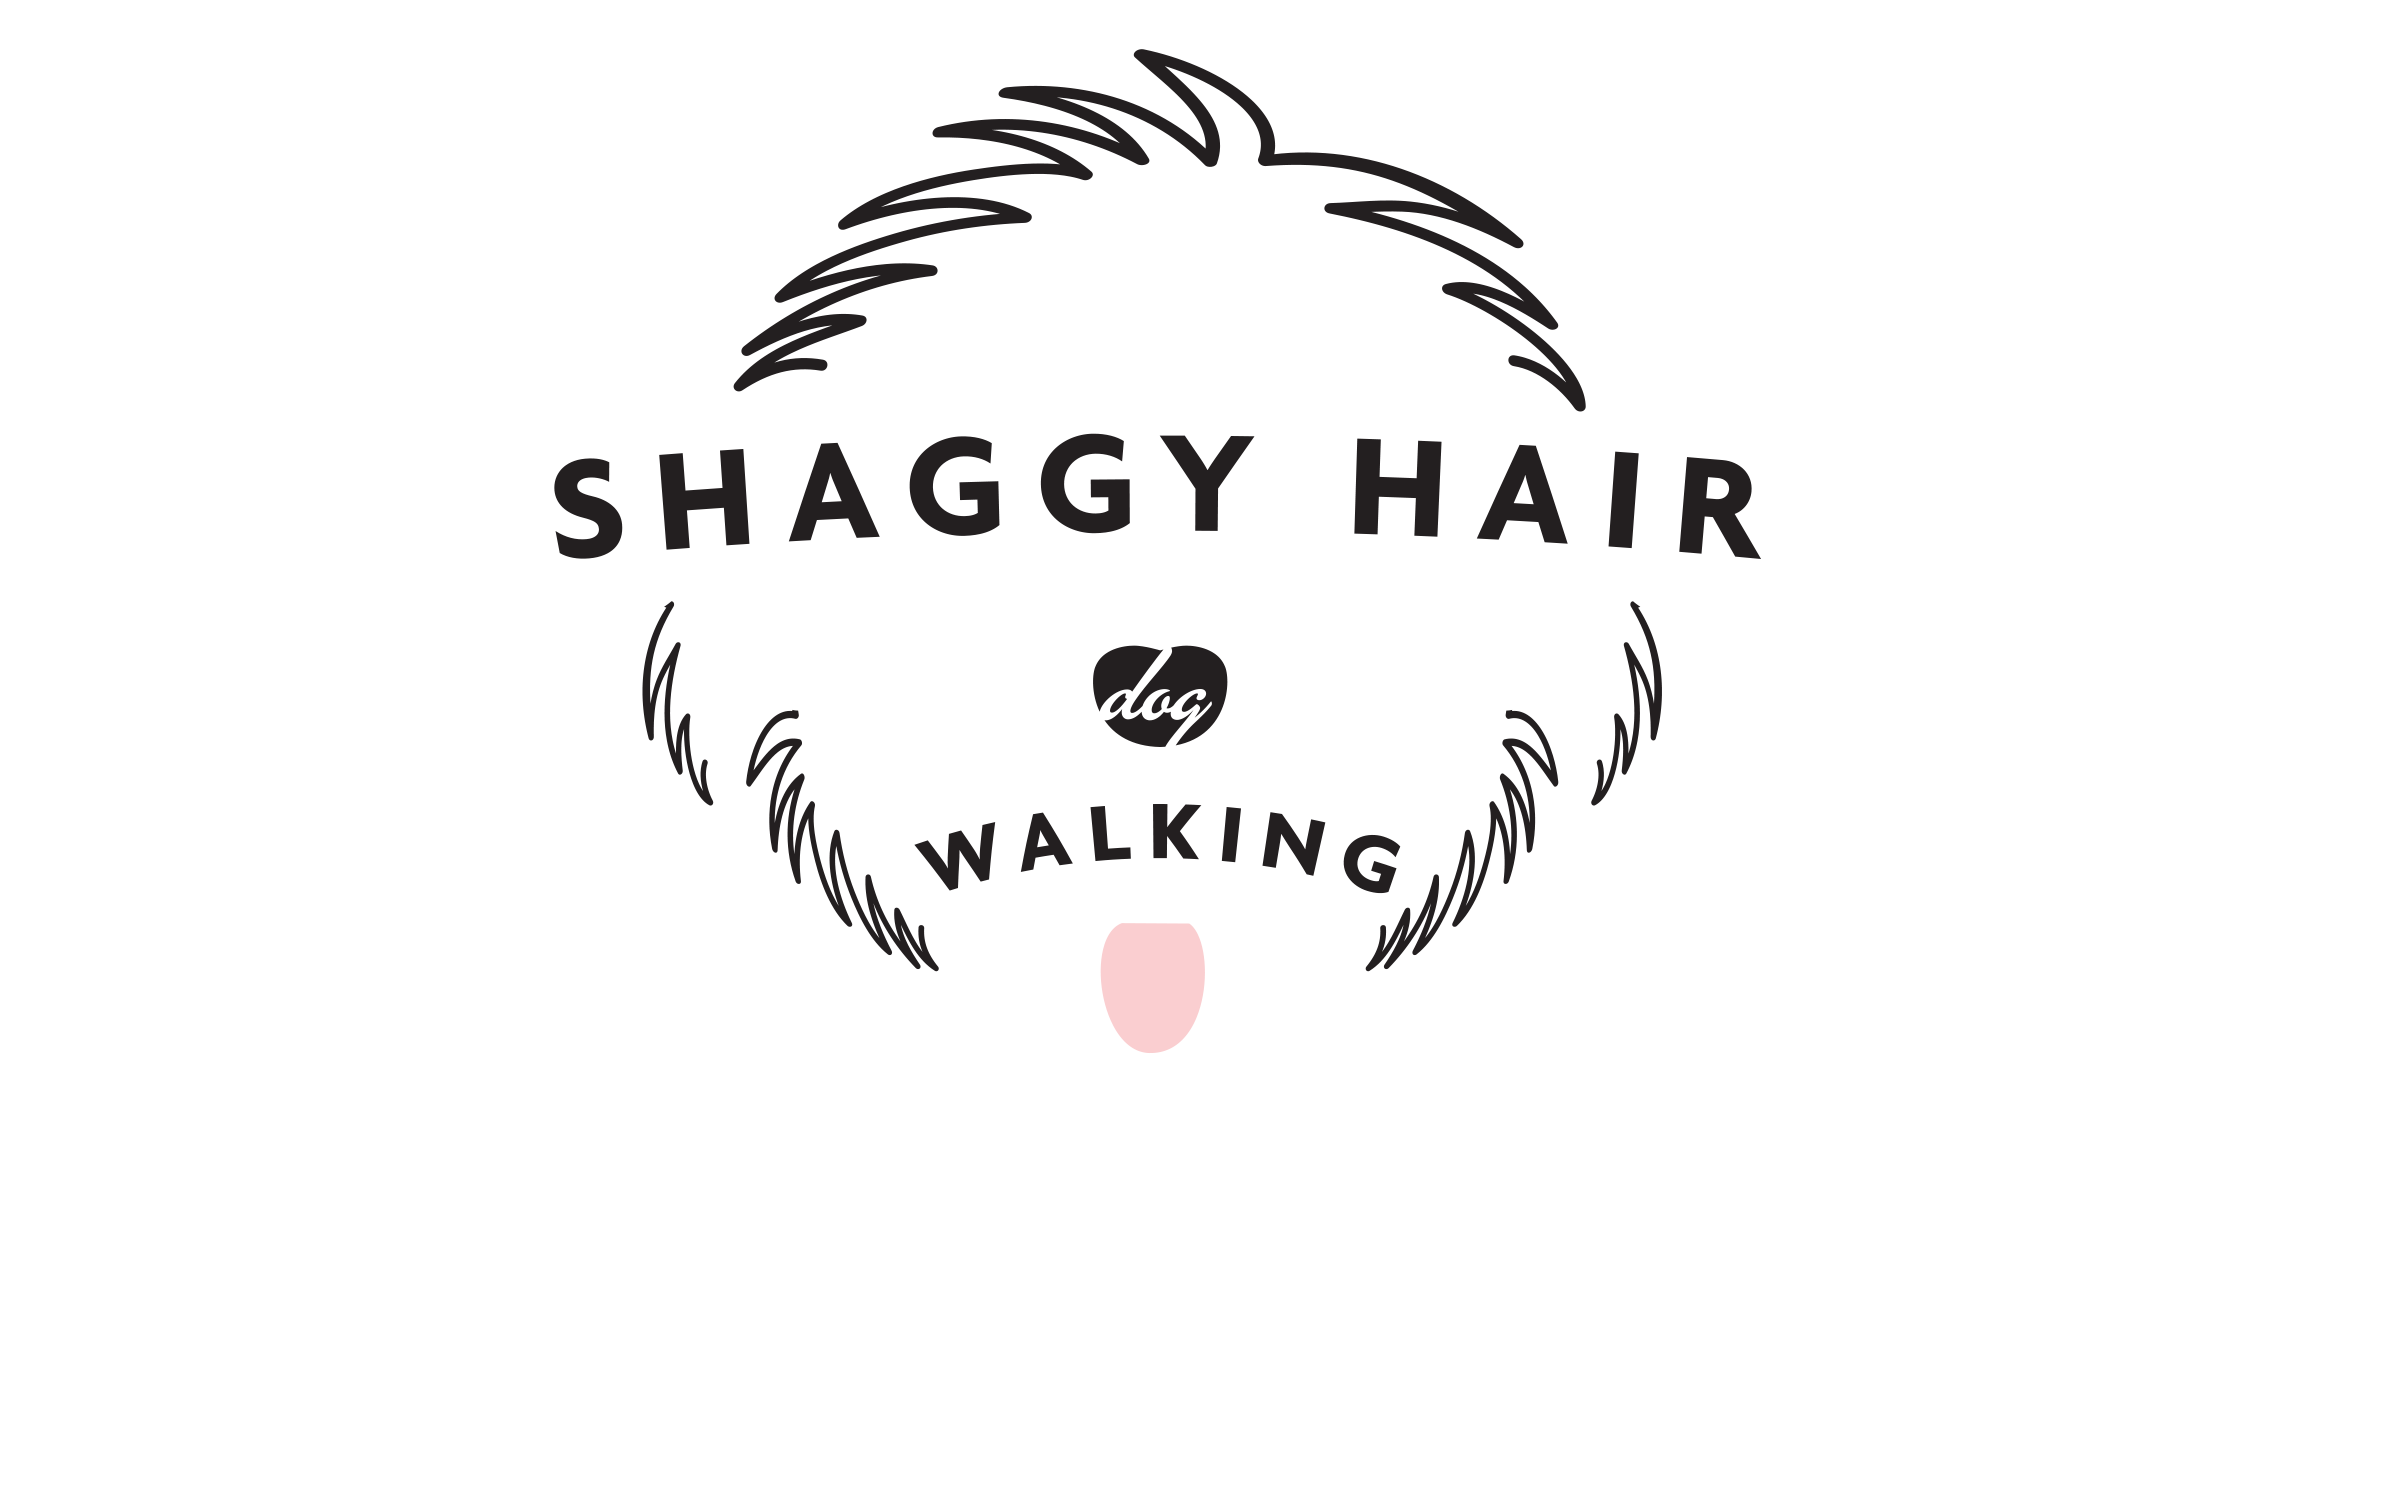 Shaggy Hair Dog Walking Logo 1